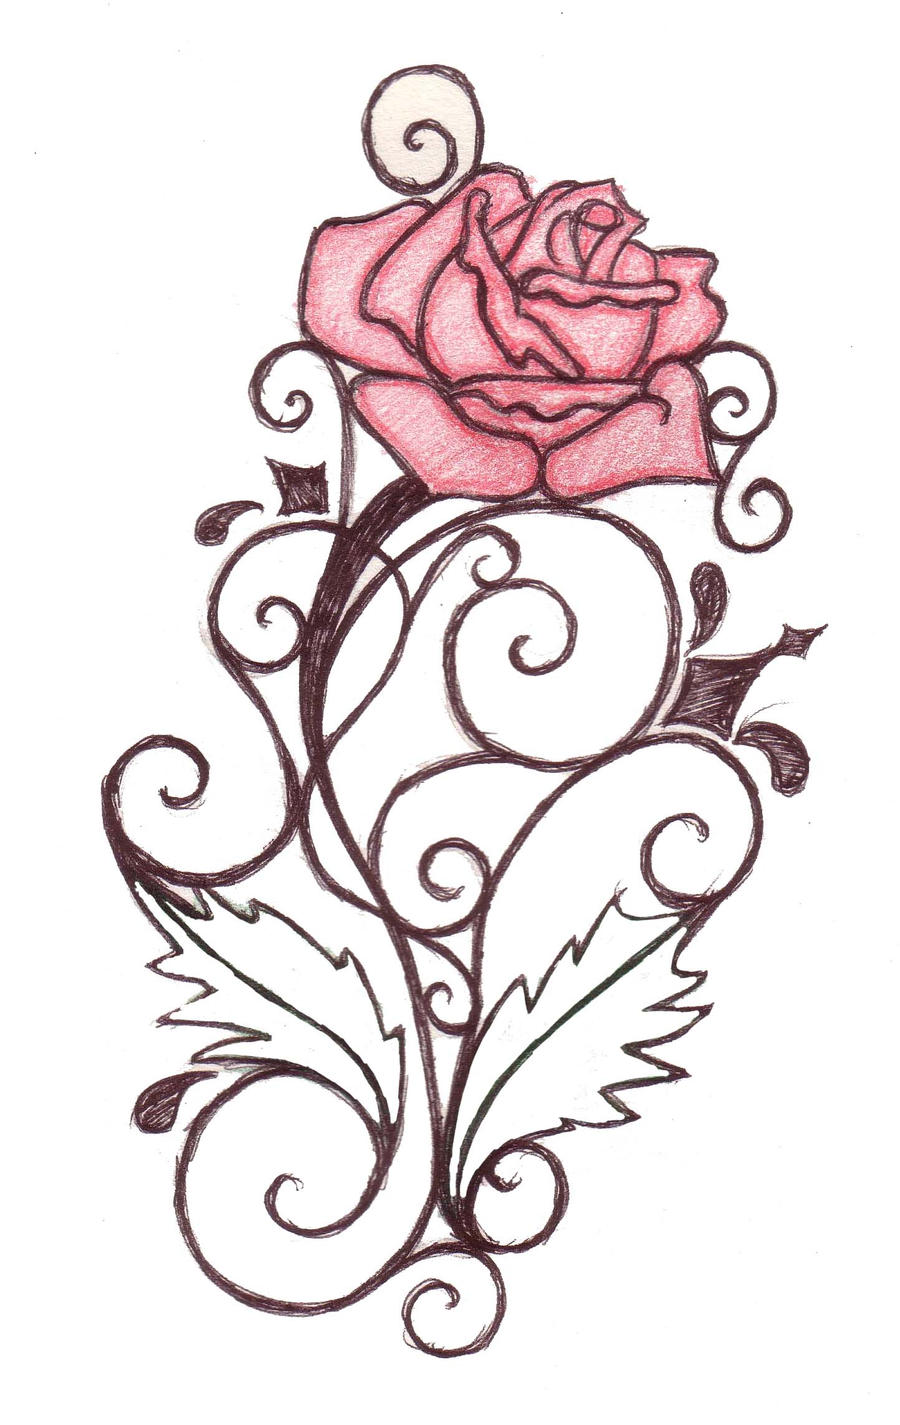 Rose Swirl Tattoo Design By Natzs101 Watch Designs Interfaces